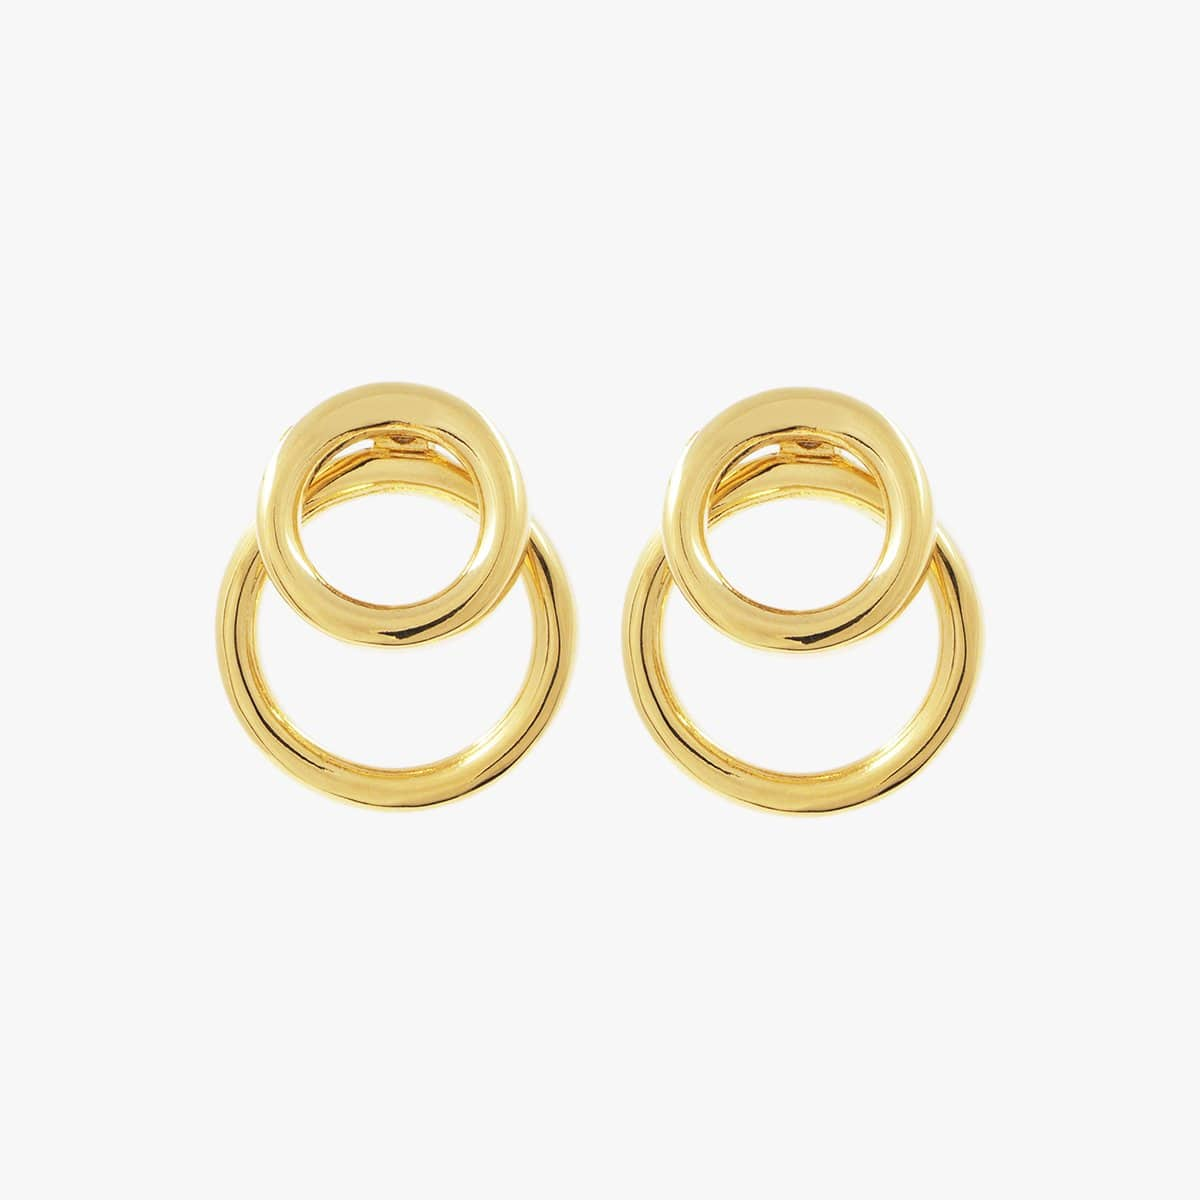 Gold Plated Earrings - E0058 ORO-CXC-Renee Taylor Gallery